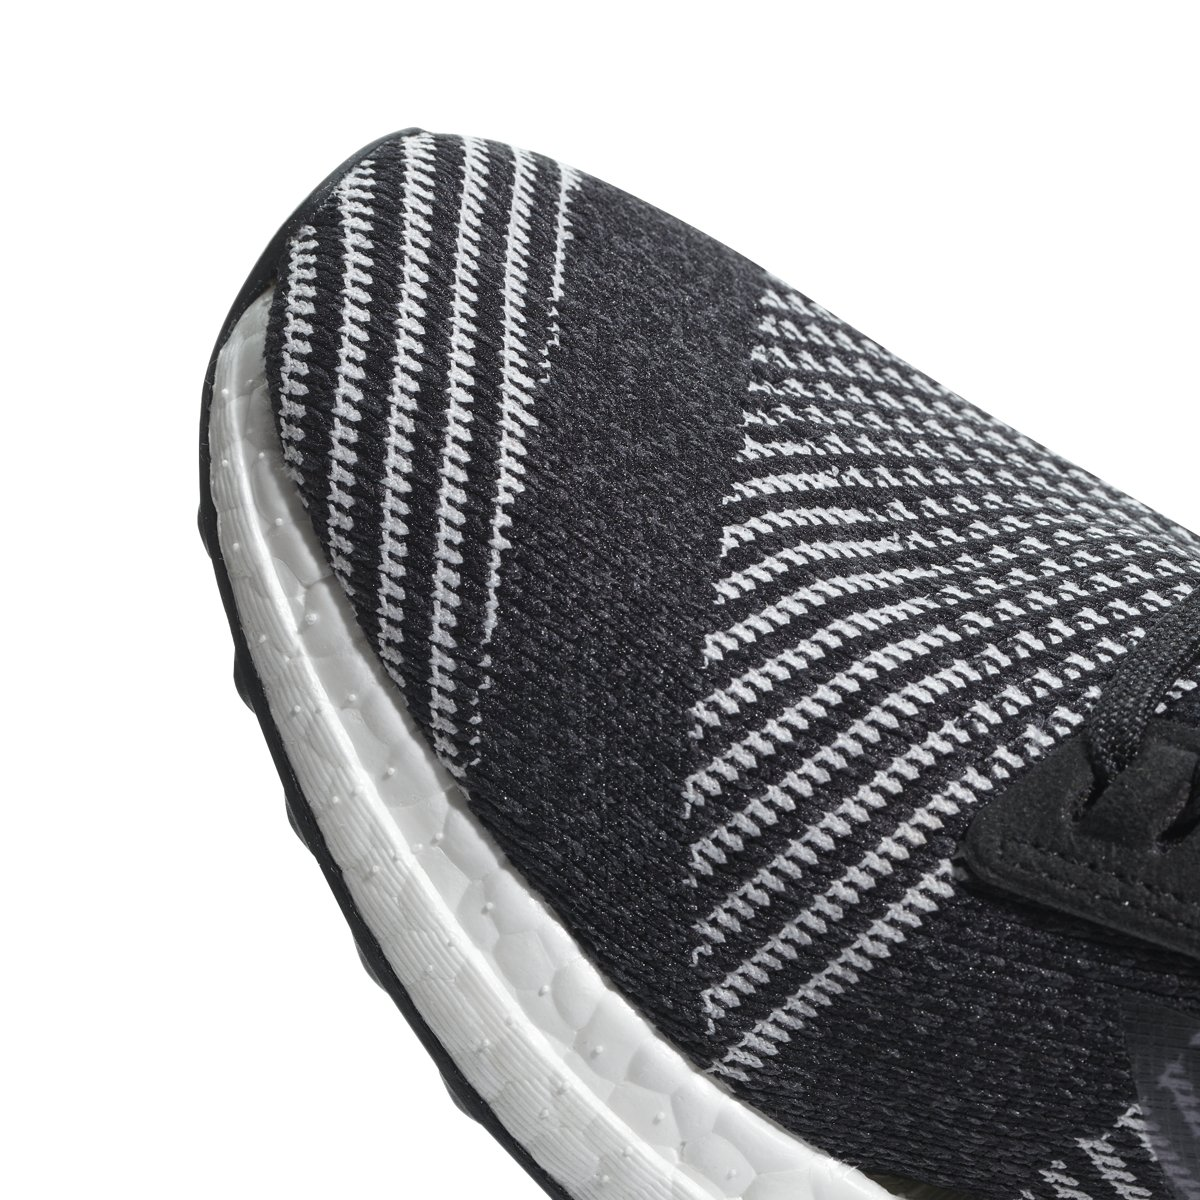 adidas Women's 9.5 Ultraboost X Running Shoe B07B4BBMRX 9.5 Women's B(M) US|Black/Grey Heather/White a357c7